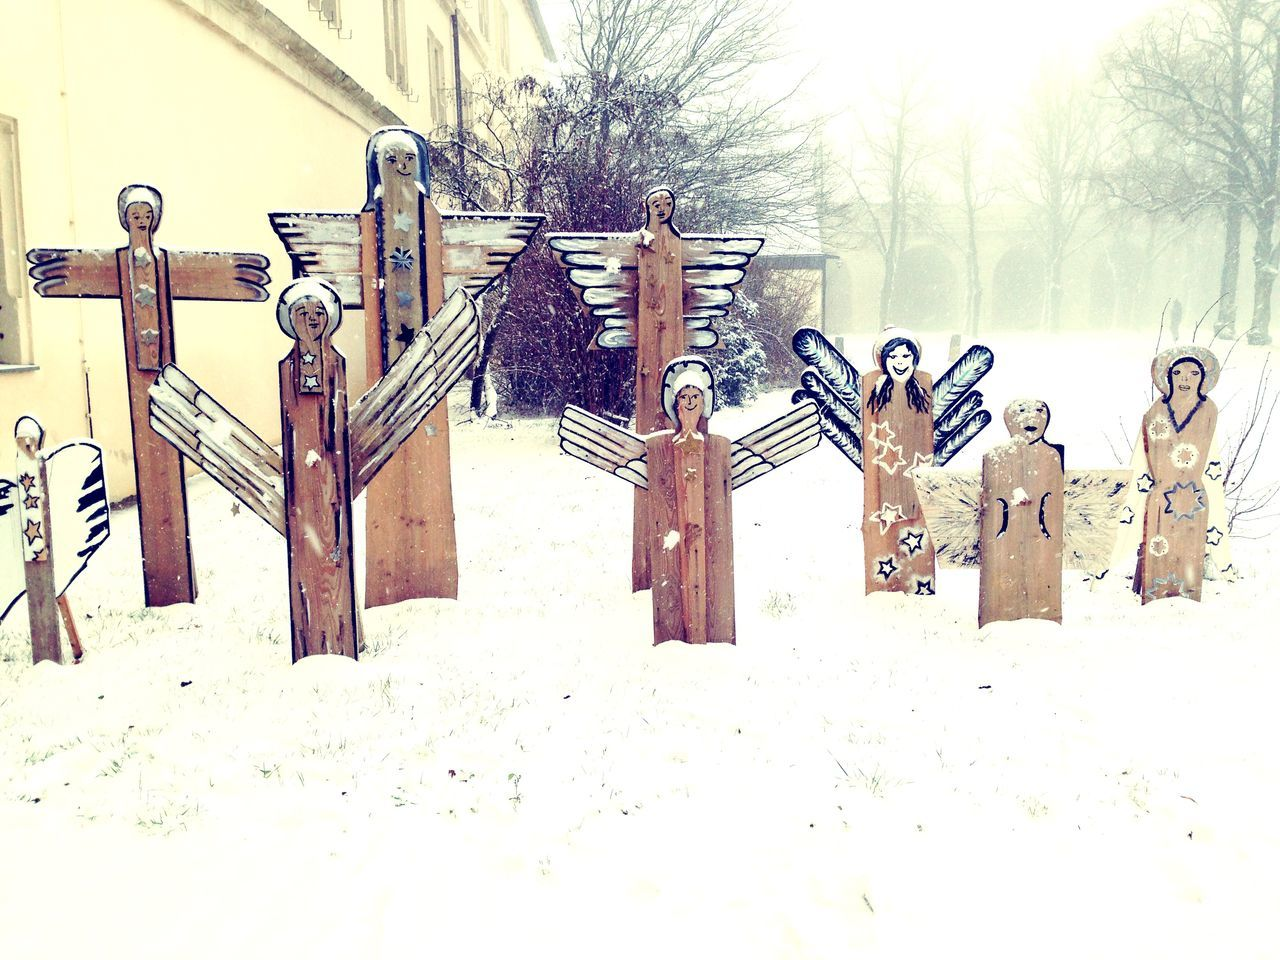 Wooden Statues On Snow Covered Field By Building